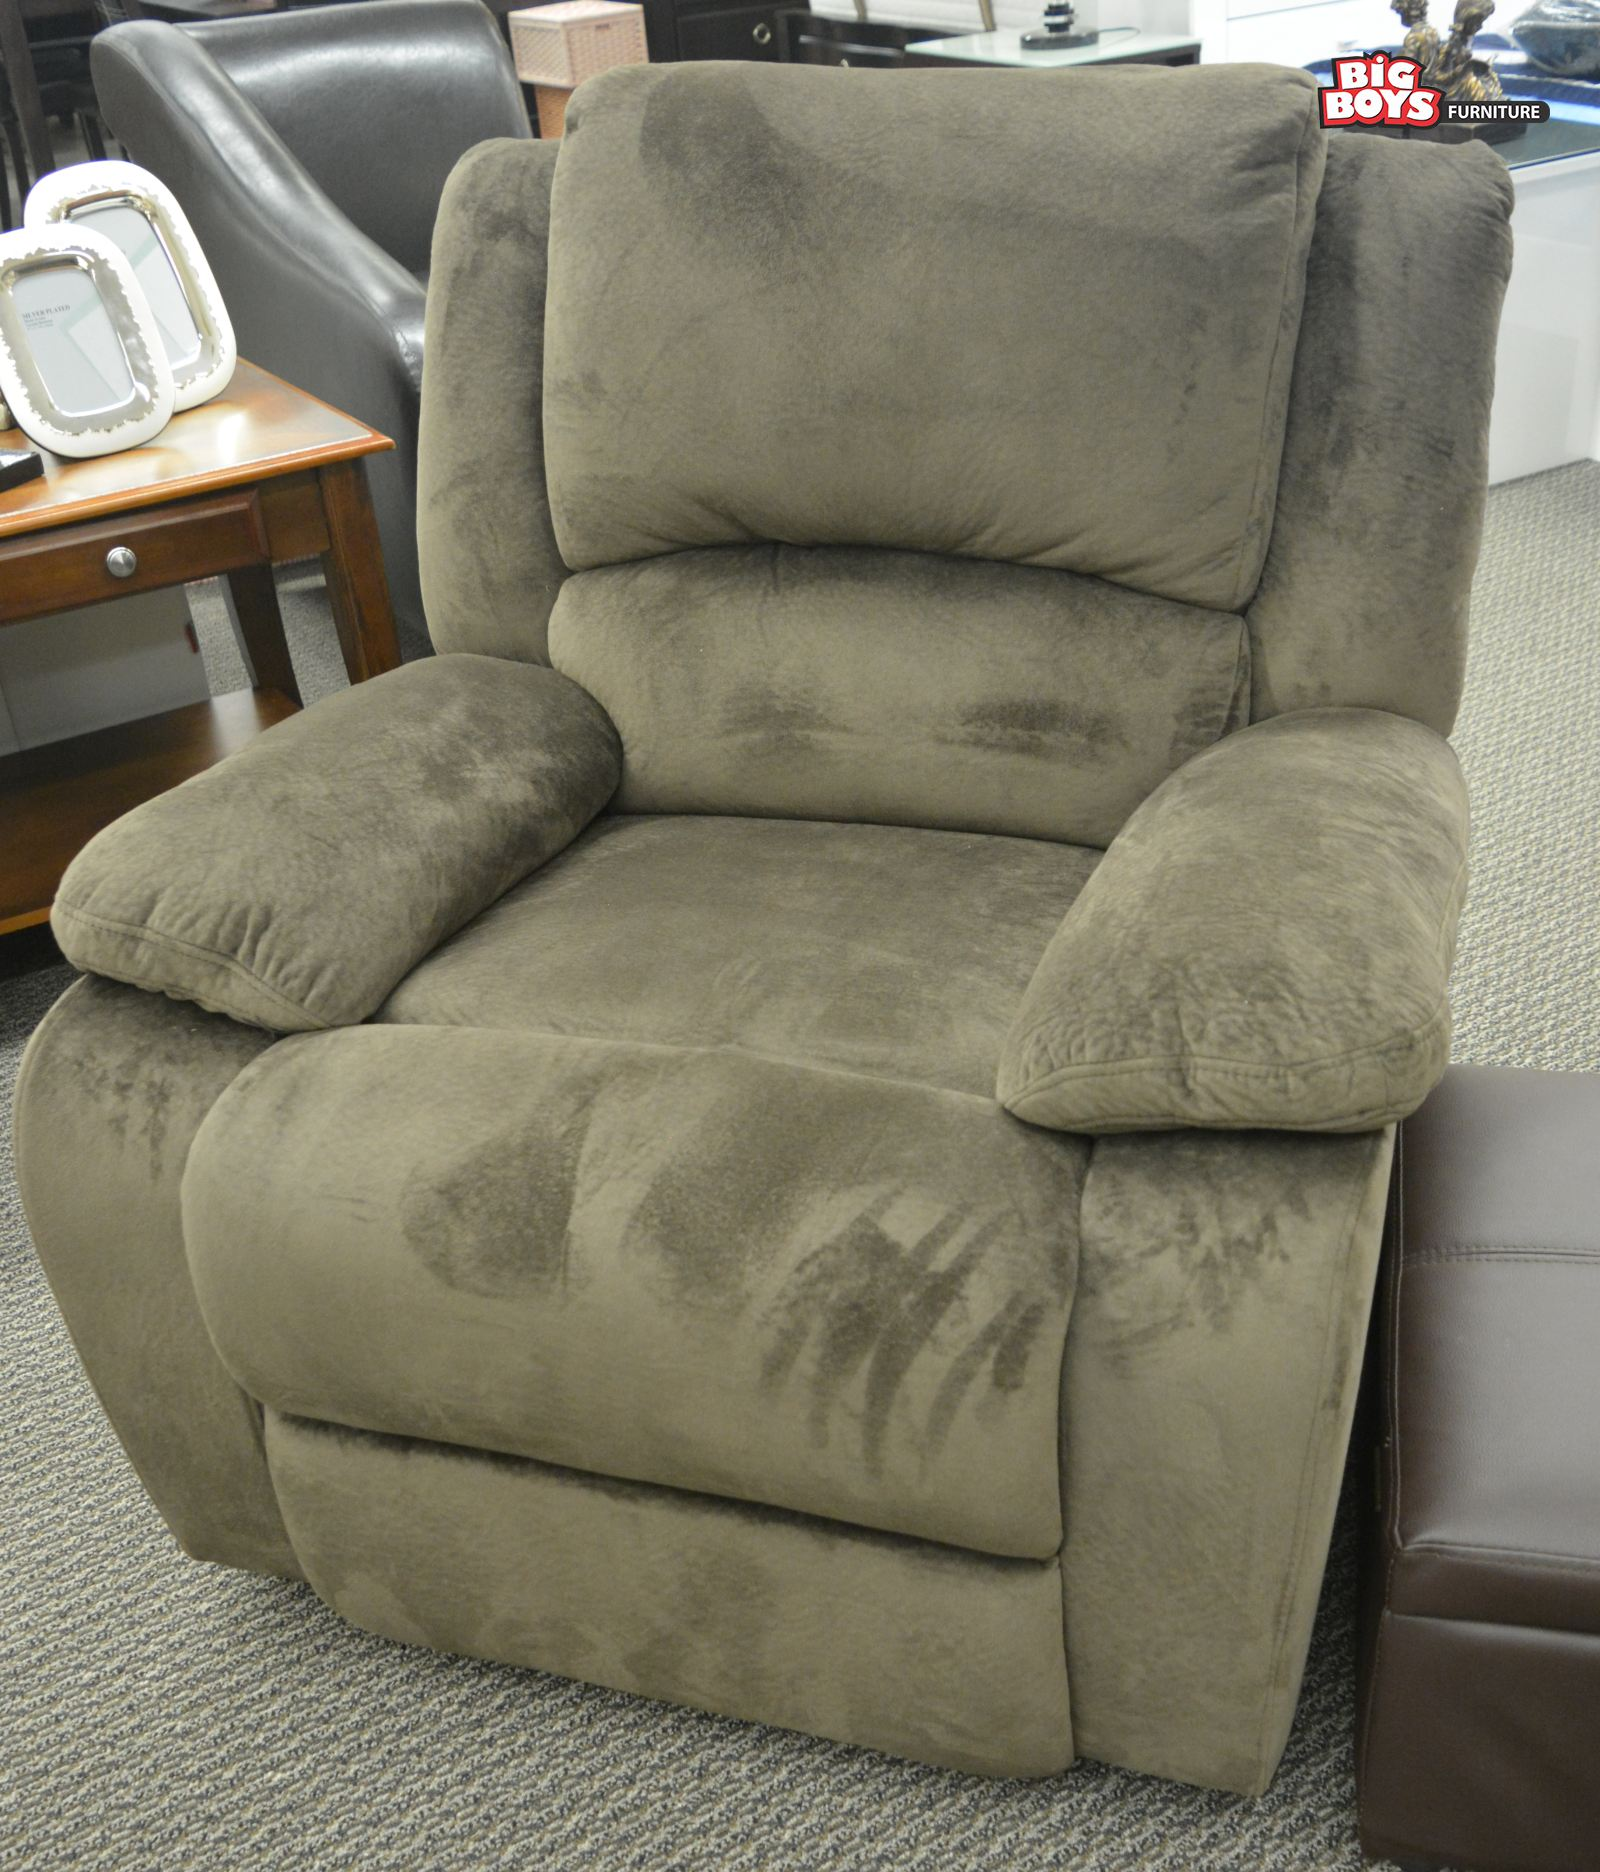 Big Boys Furniture offers different range of Reclining Chairs